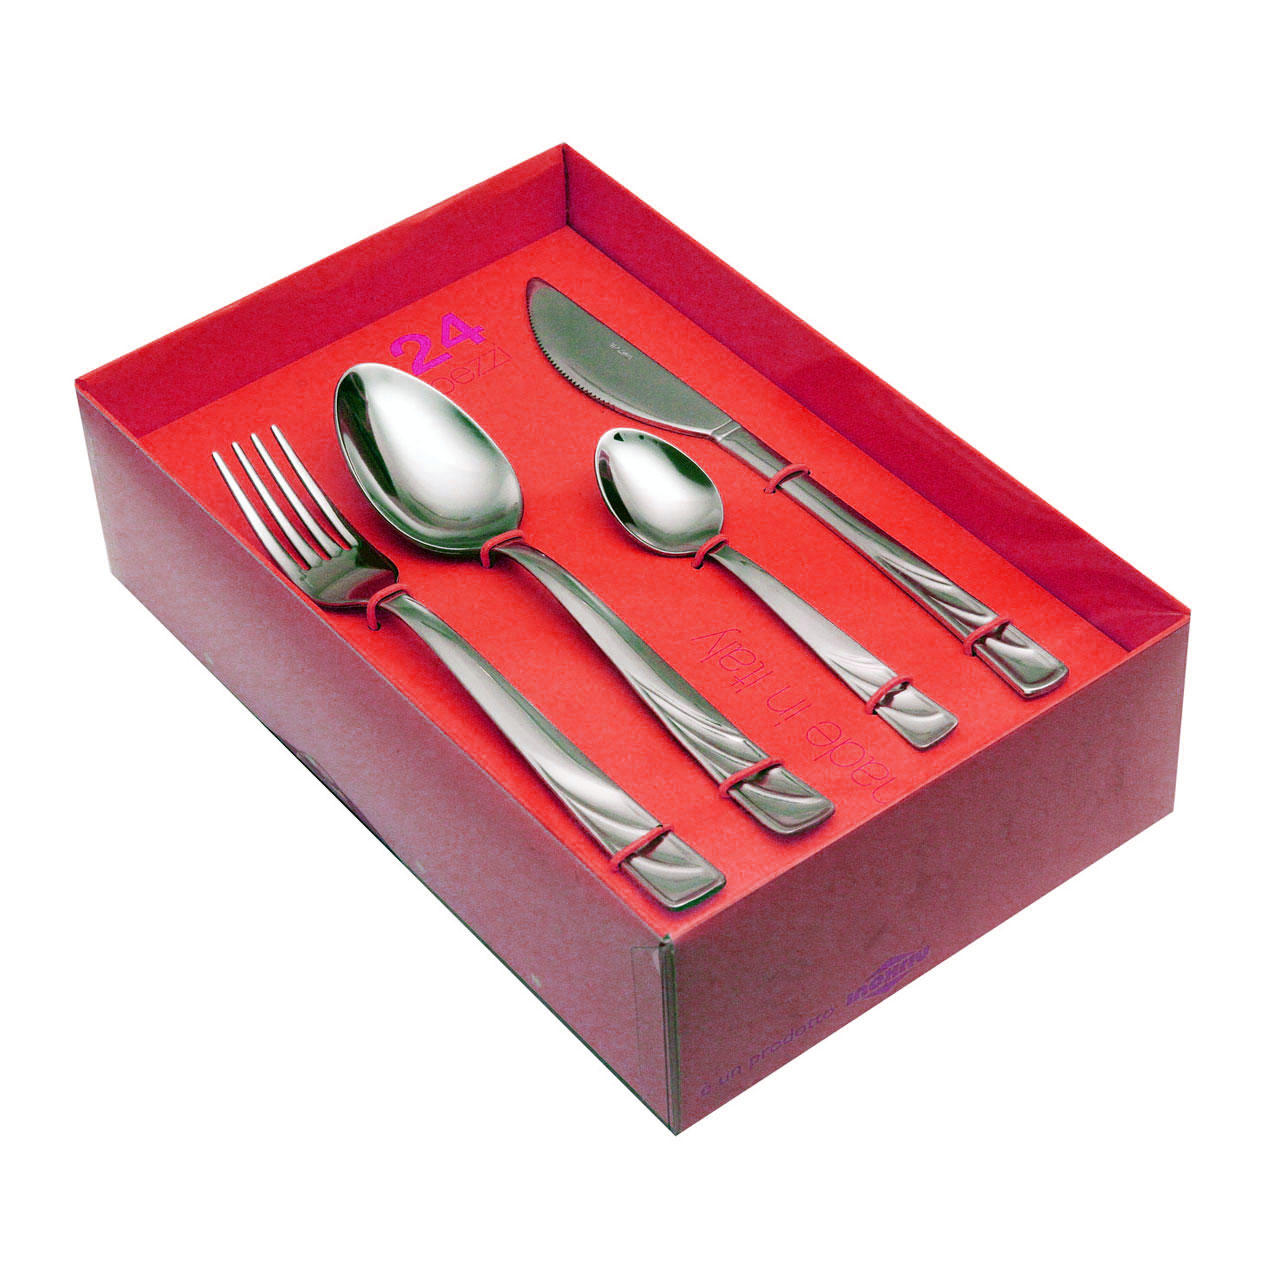 61320524 24 pcs. cutlery set forged knife Nature Box